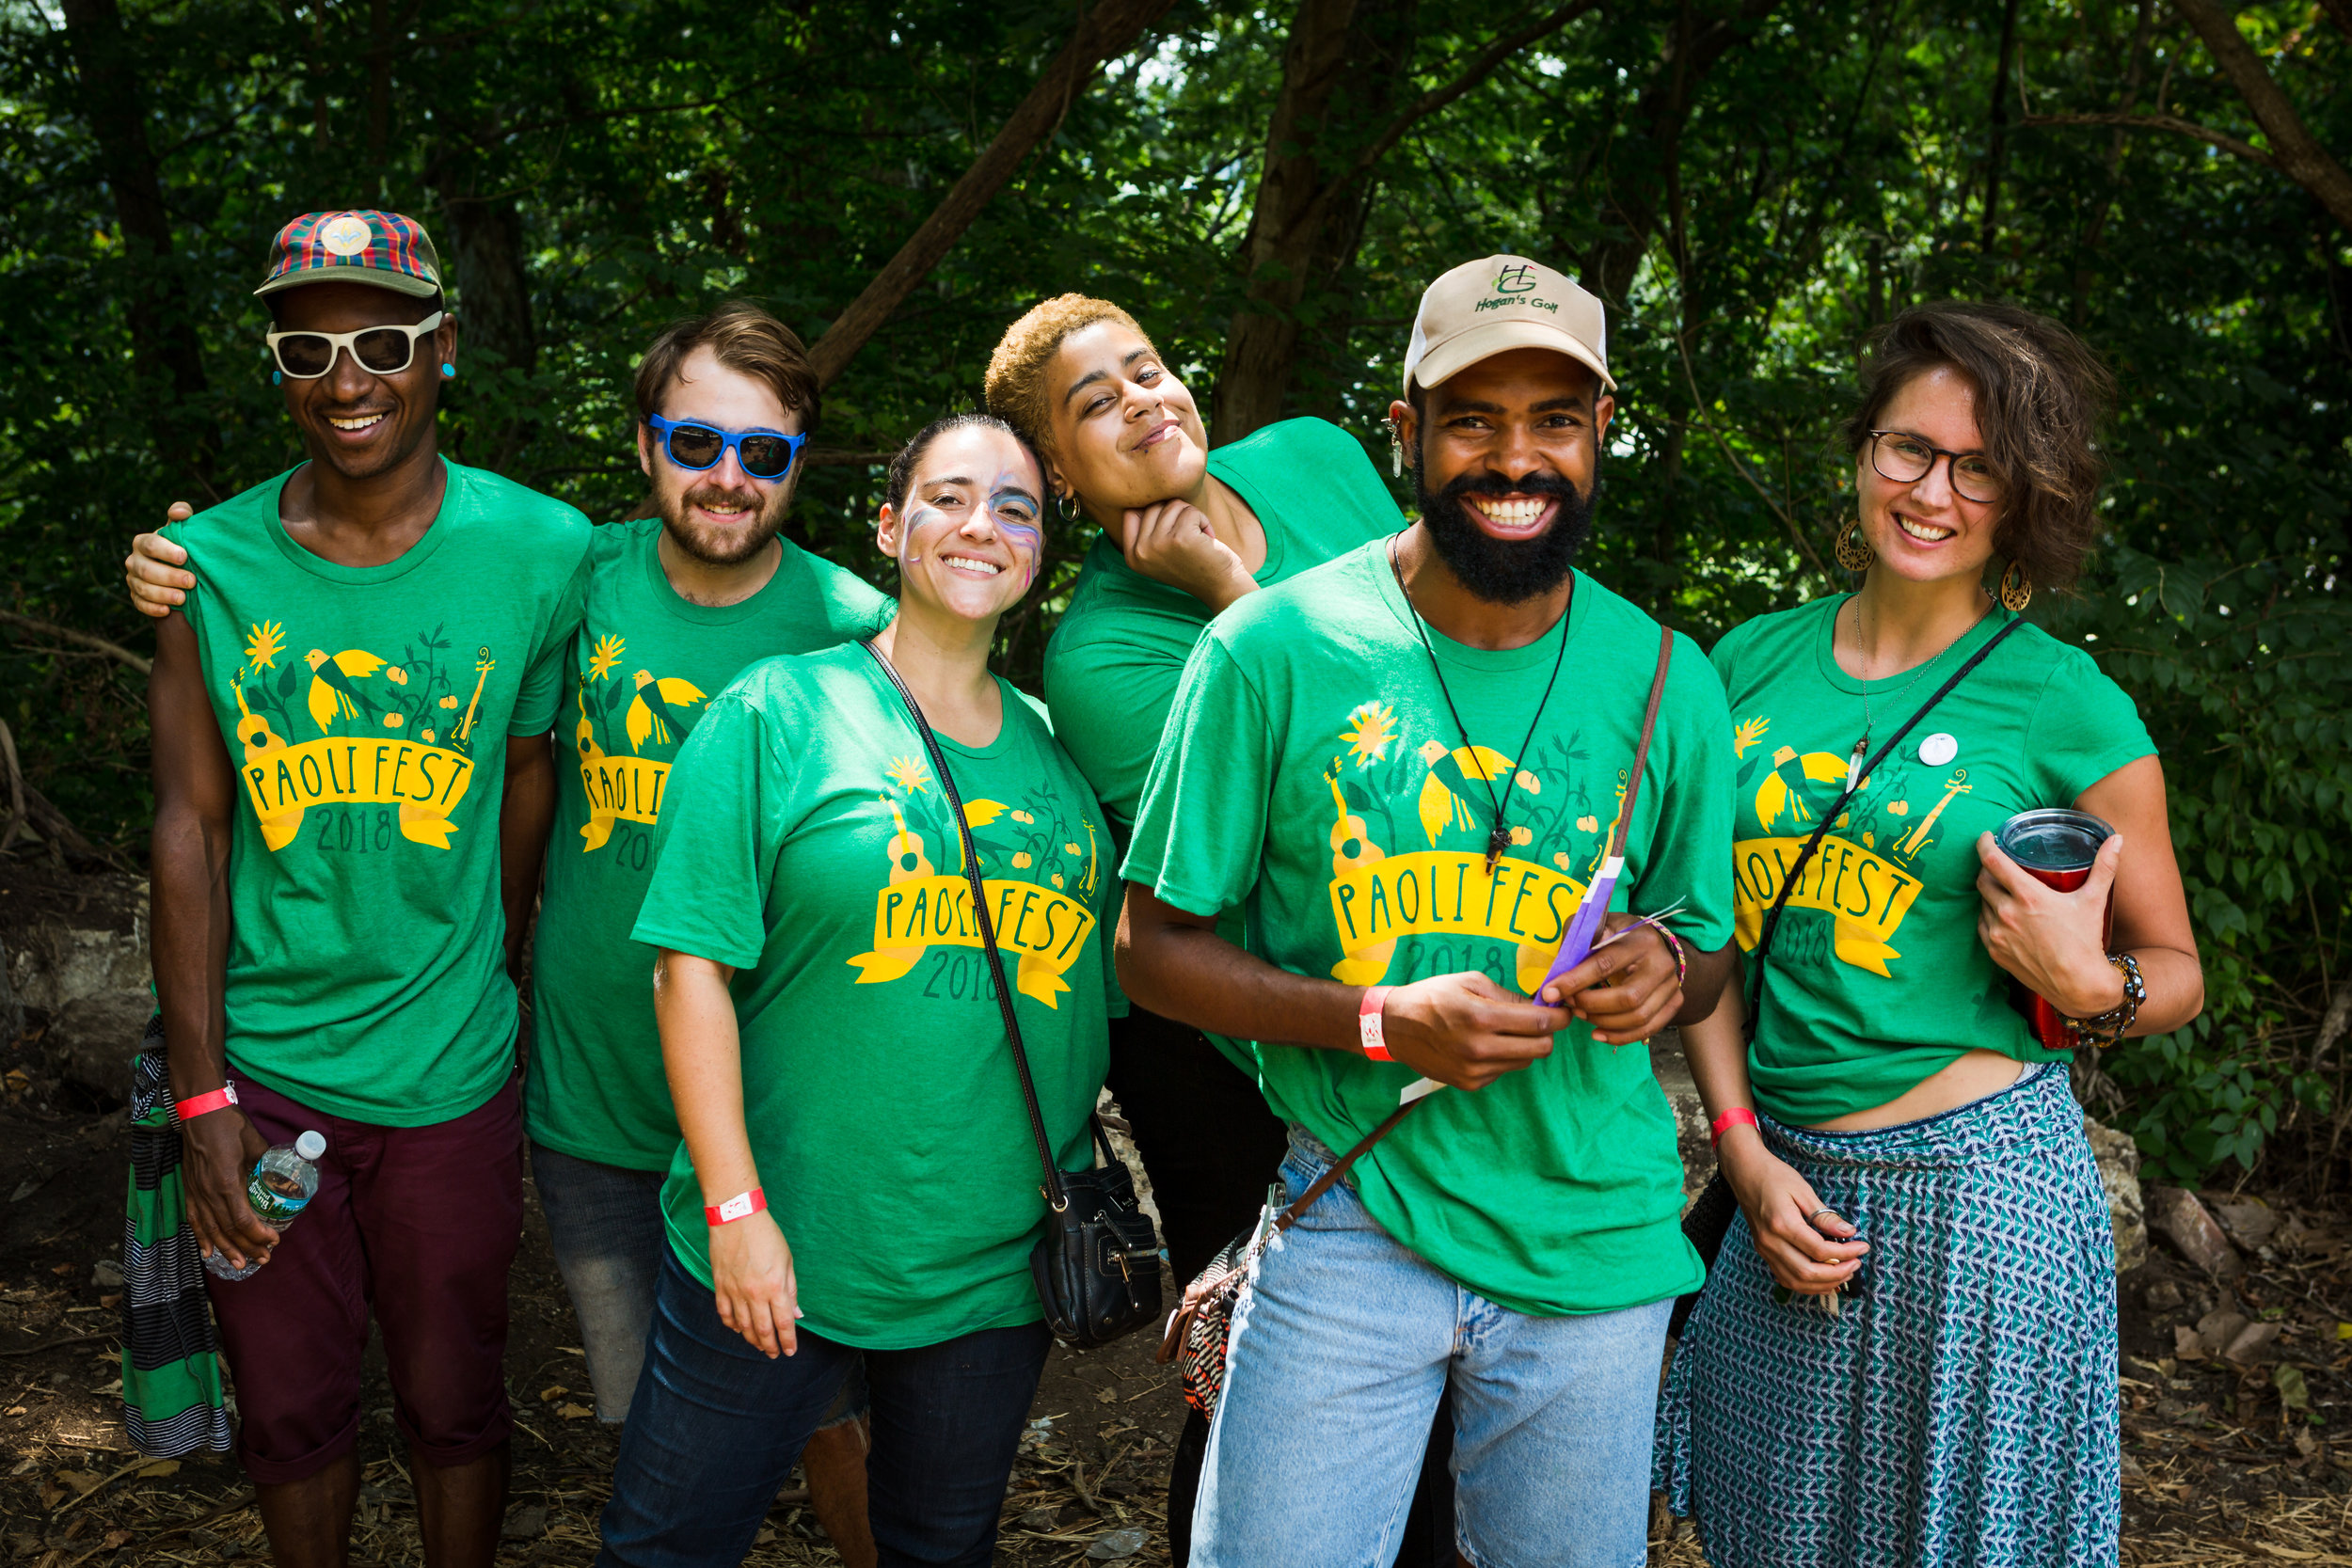 Want to VOLUNTEER at PaoliFest? - Please contact kara@paolifest.com